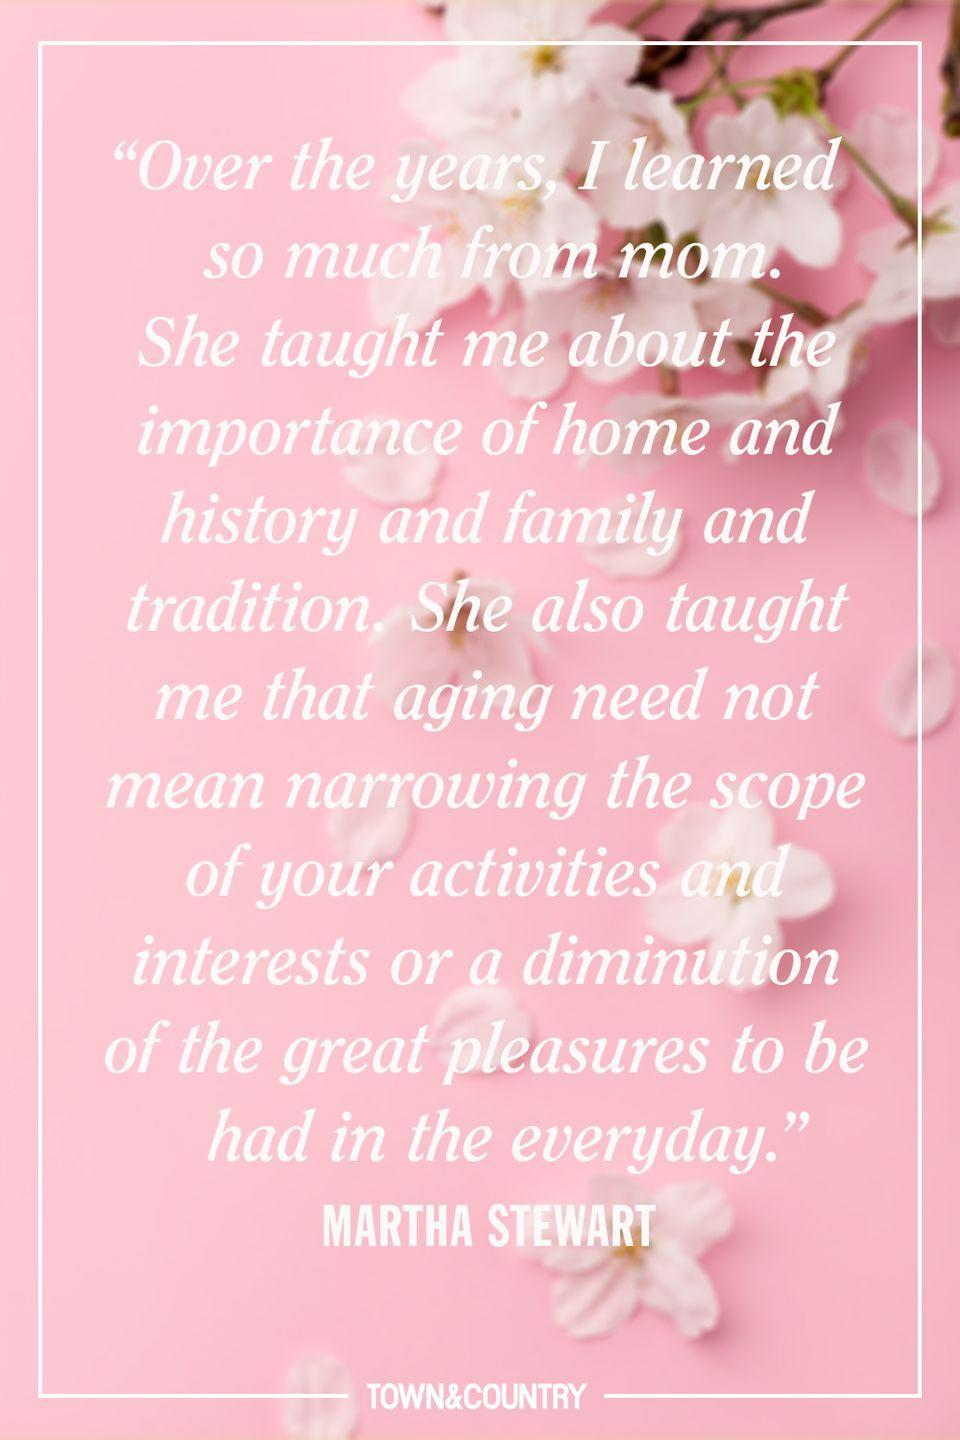 """<p>""""Over the years, I learned so much from mom. She taught me about the importance of home and history and family and tradition. She also taught me that aging need not mean narrowing the scope of your activities and interests or a diminution of the great pleasures to be had in the everyday."""" </p><p>- Martha Stewart</p>"""